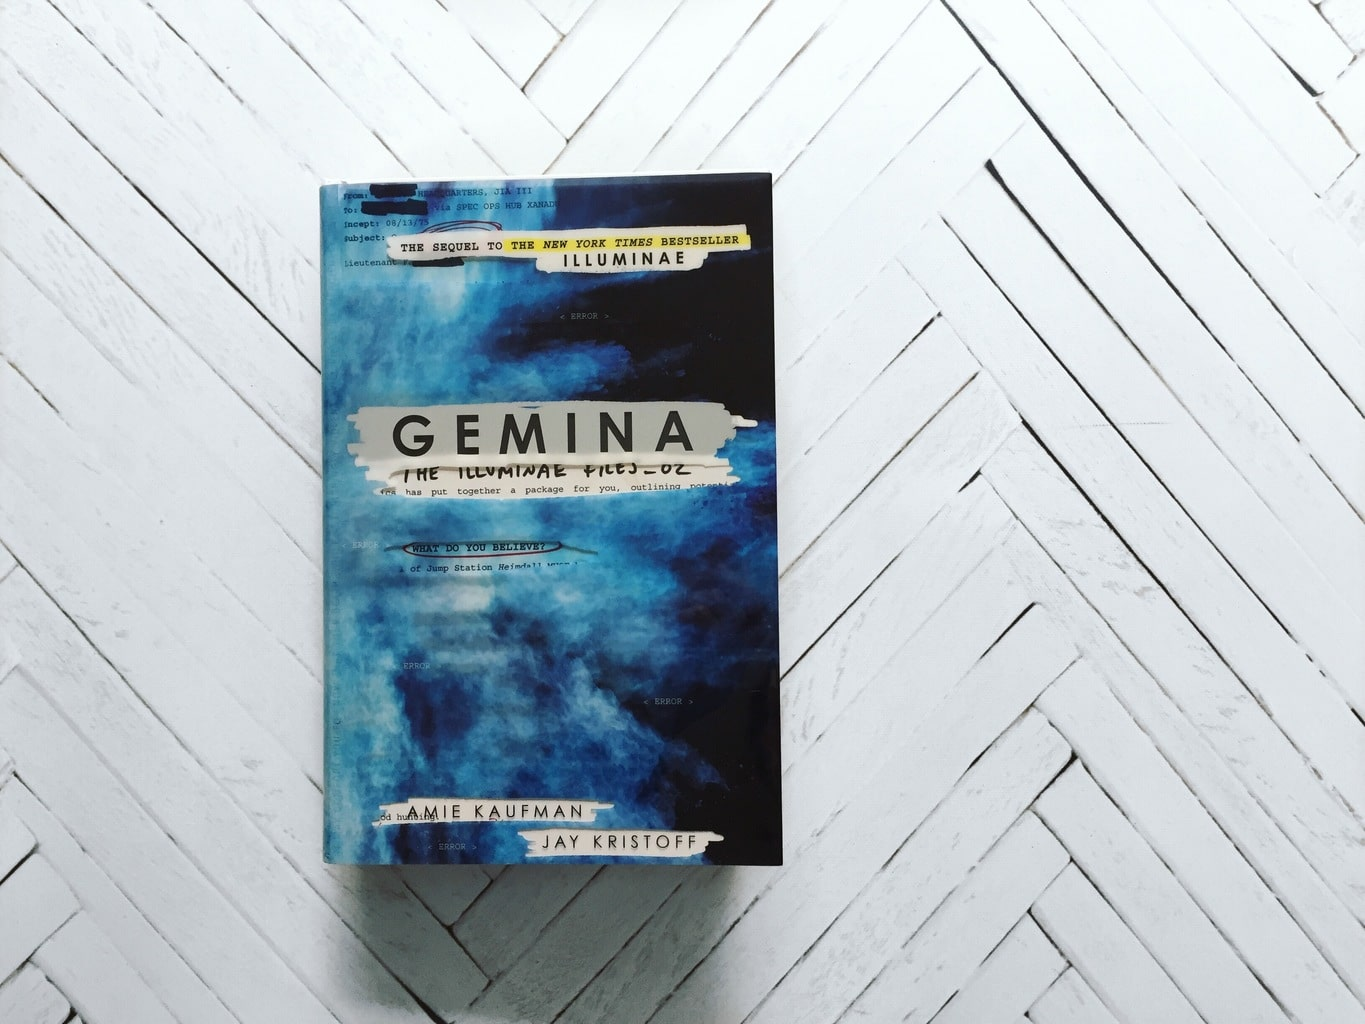 Gemina: Is the novelty losing it's luster?